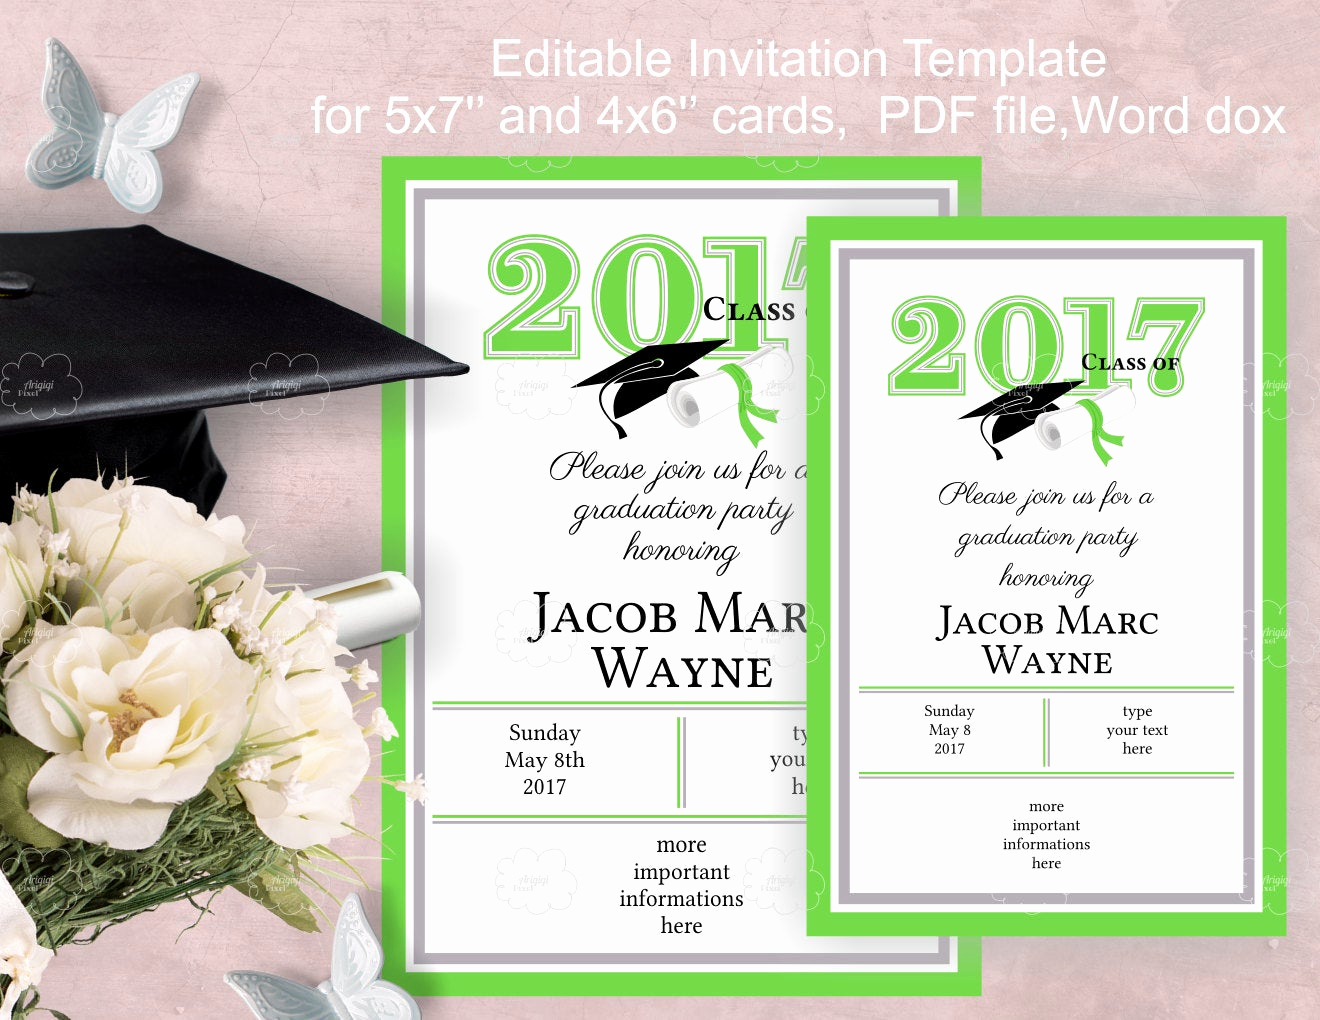 Graduation Party Invitations Templates Awesome Graduation Party Invitation Template Edit Yourself